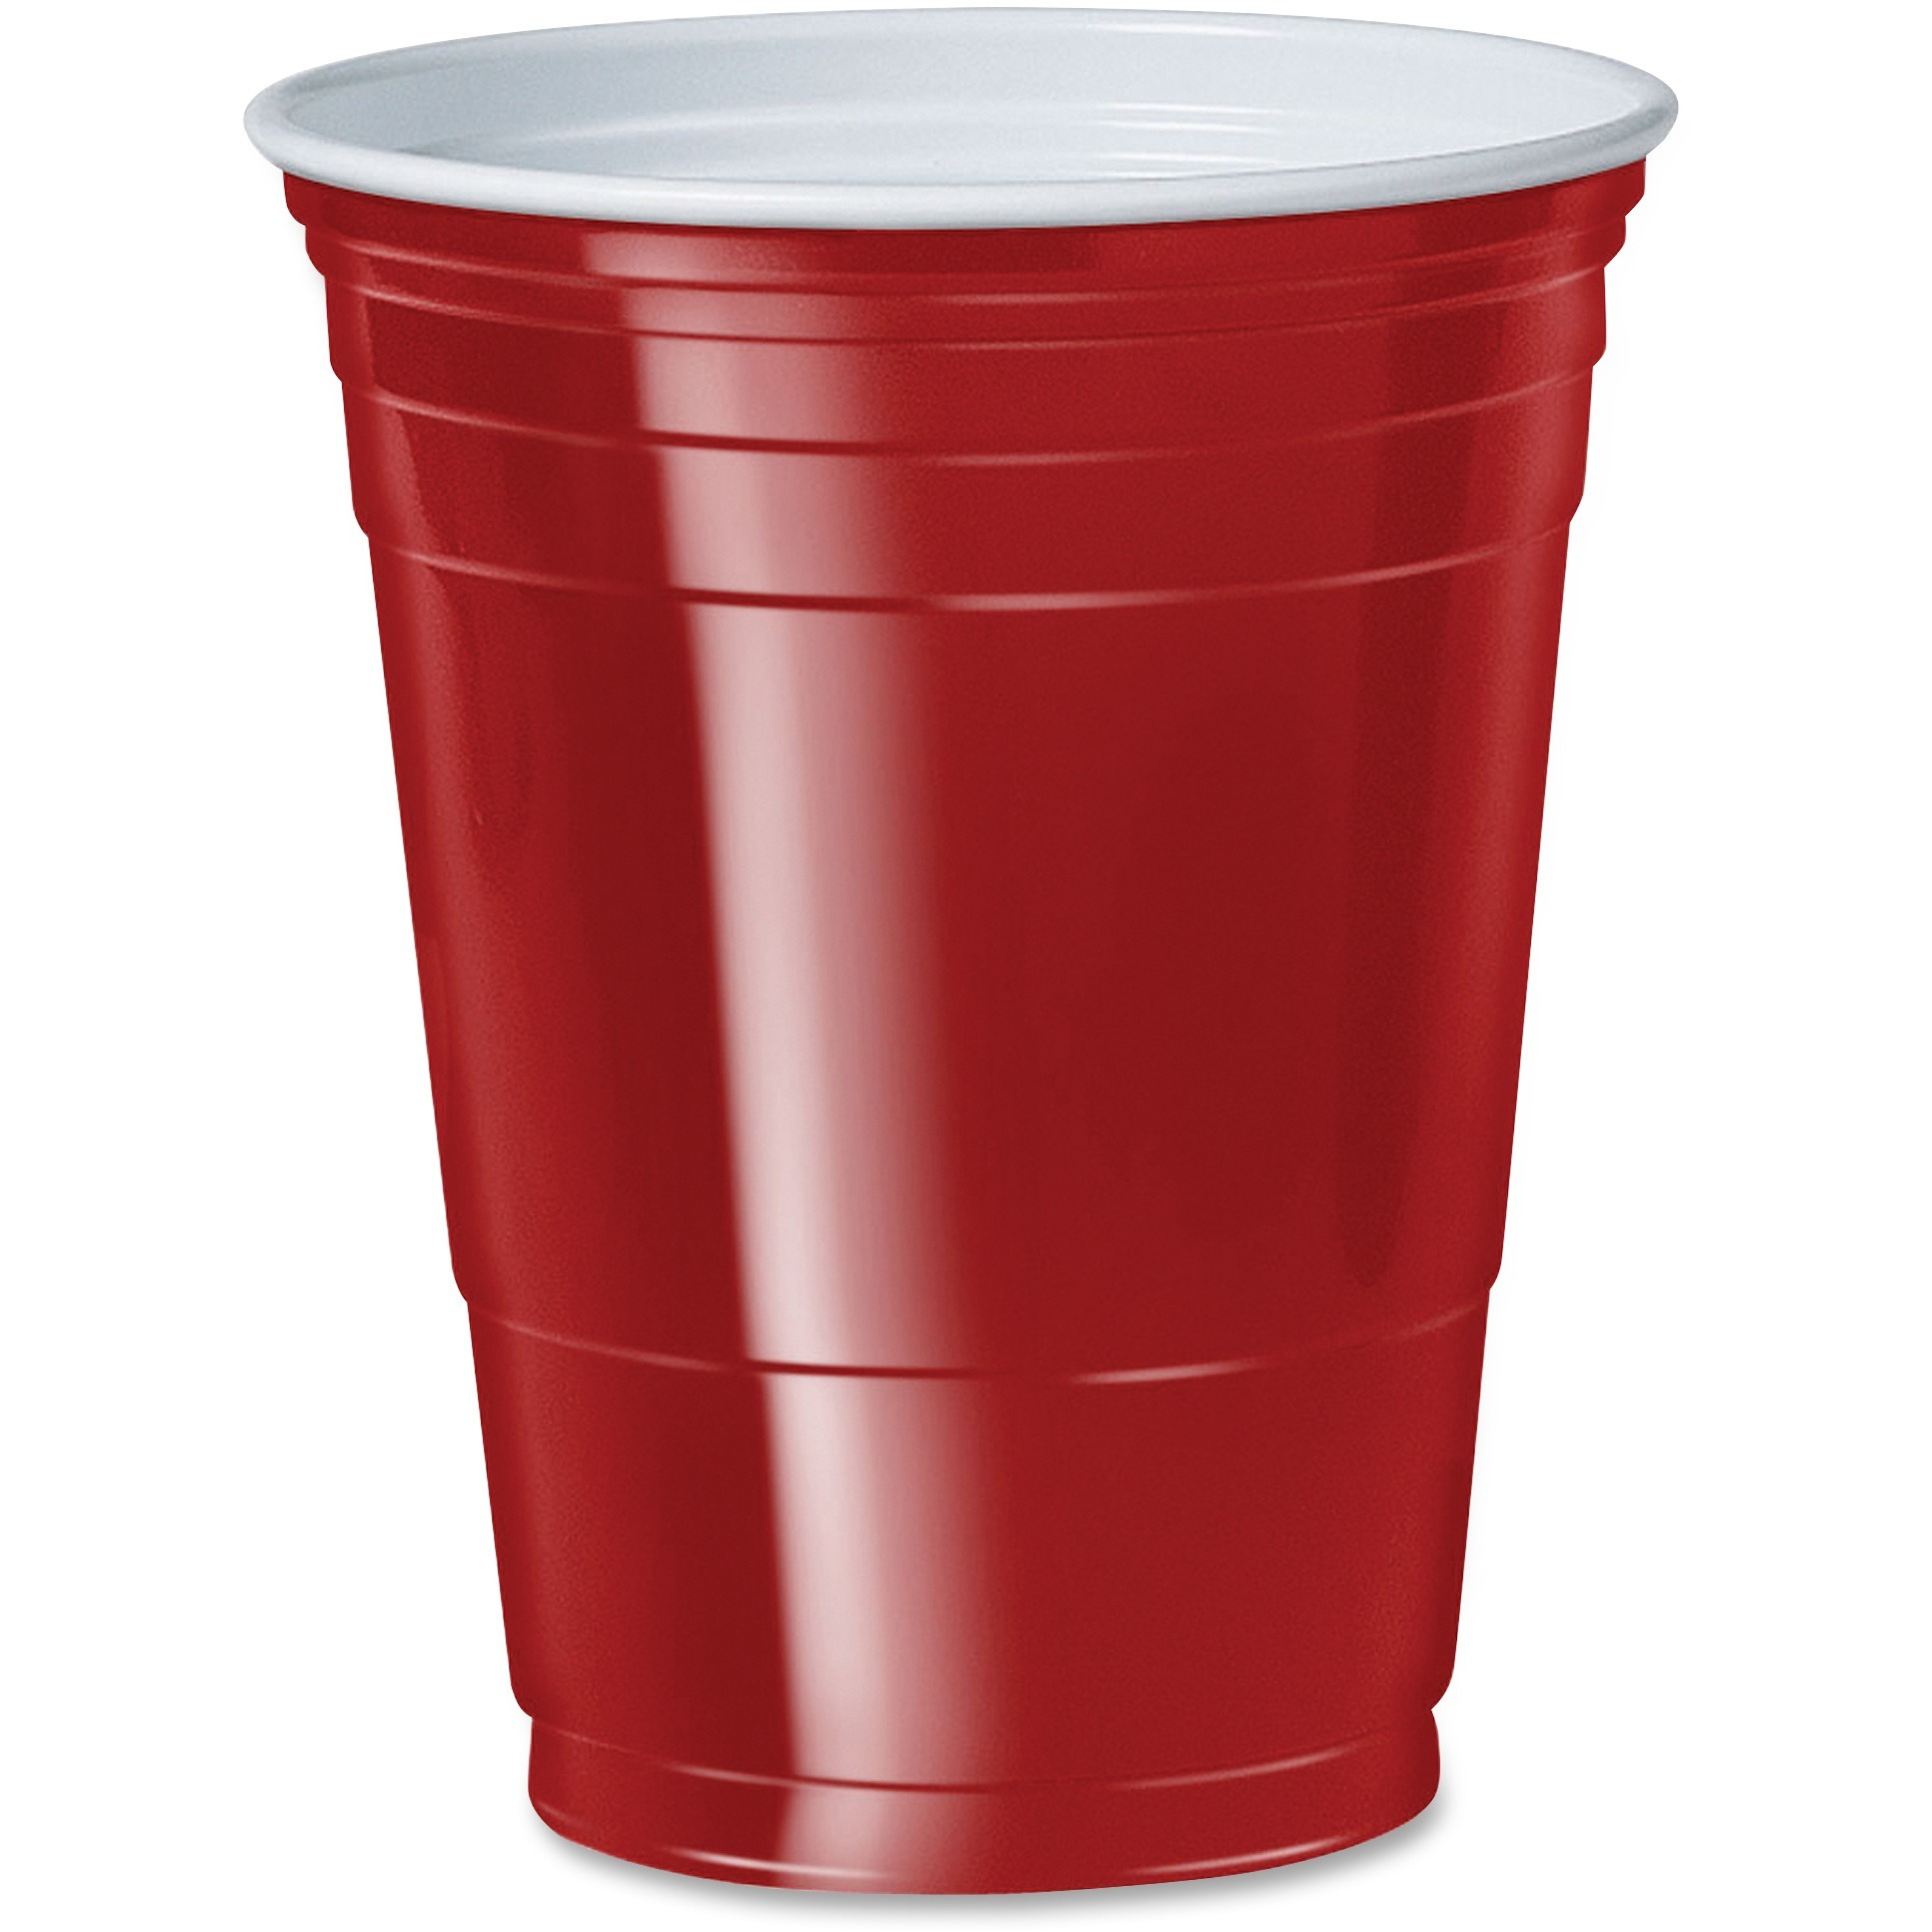 Solo, SCCP16RCT, Cup 16 oz. Plastic Cold Party Cups, 1000 / Carton, Red, 16 fl oz